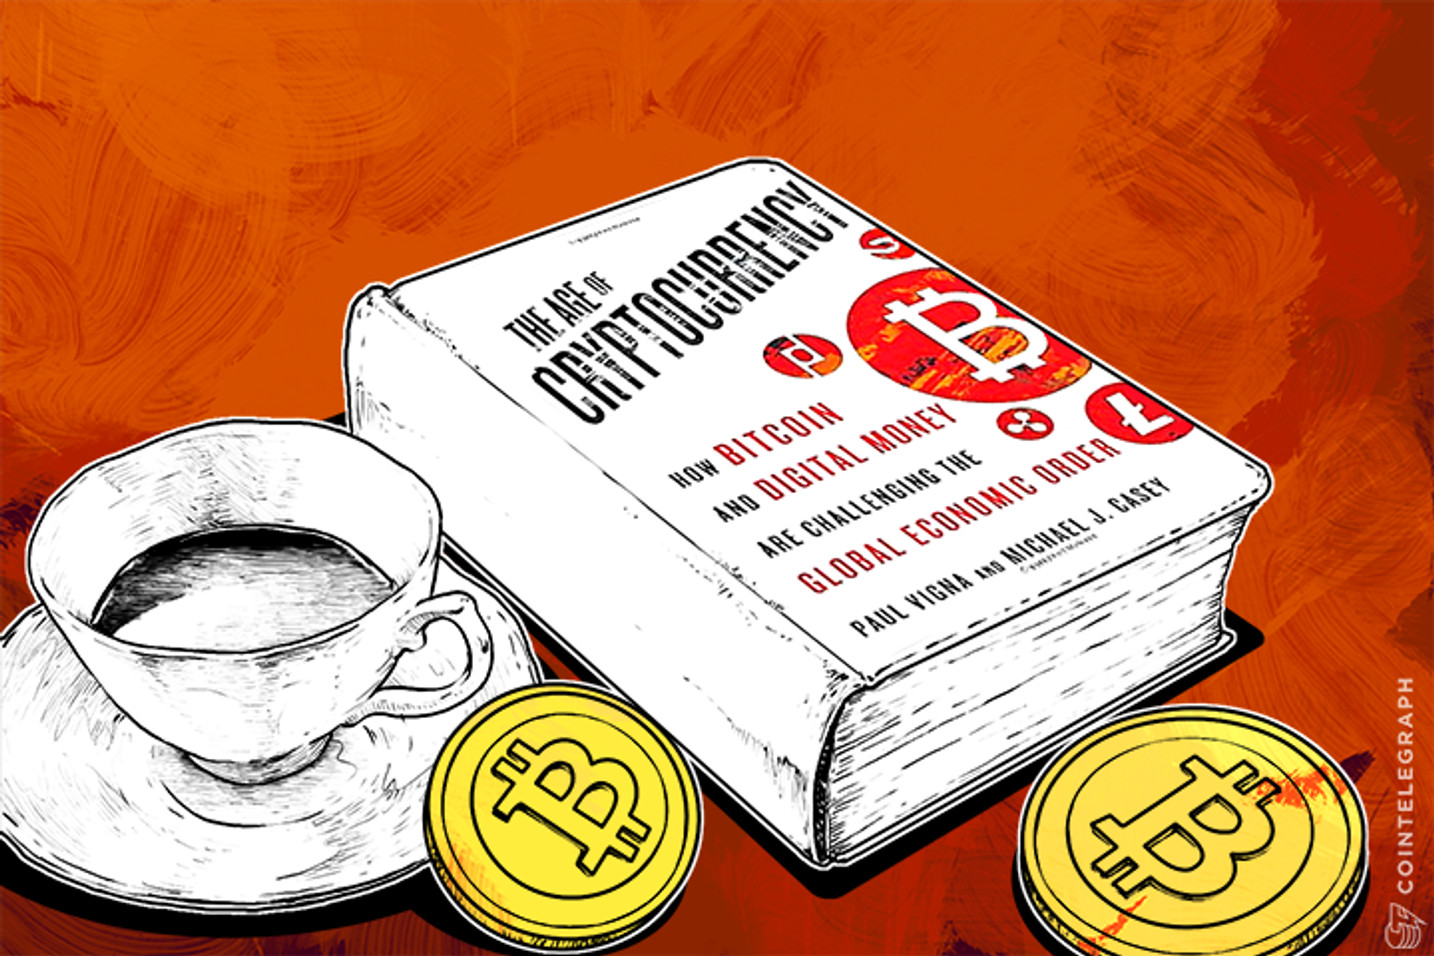 The 'Age of Cryptocurrency' Book: Two Outsiders Look In at Bitcoin and Digital Money